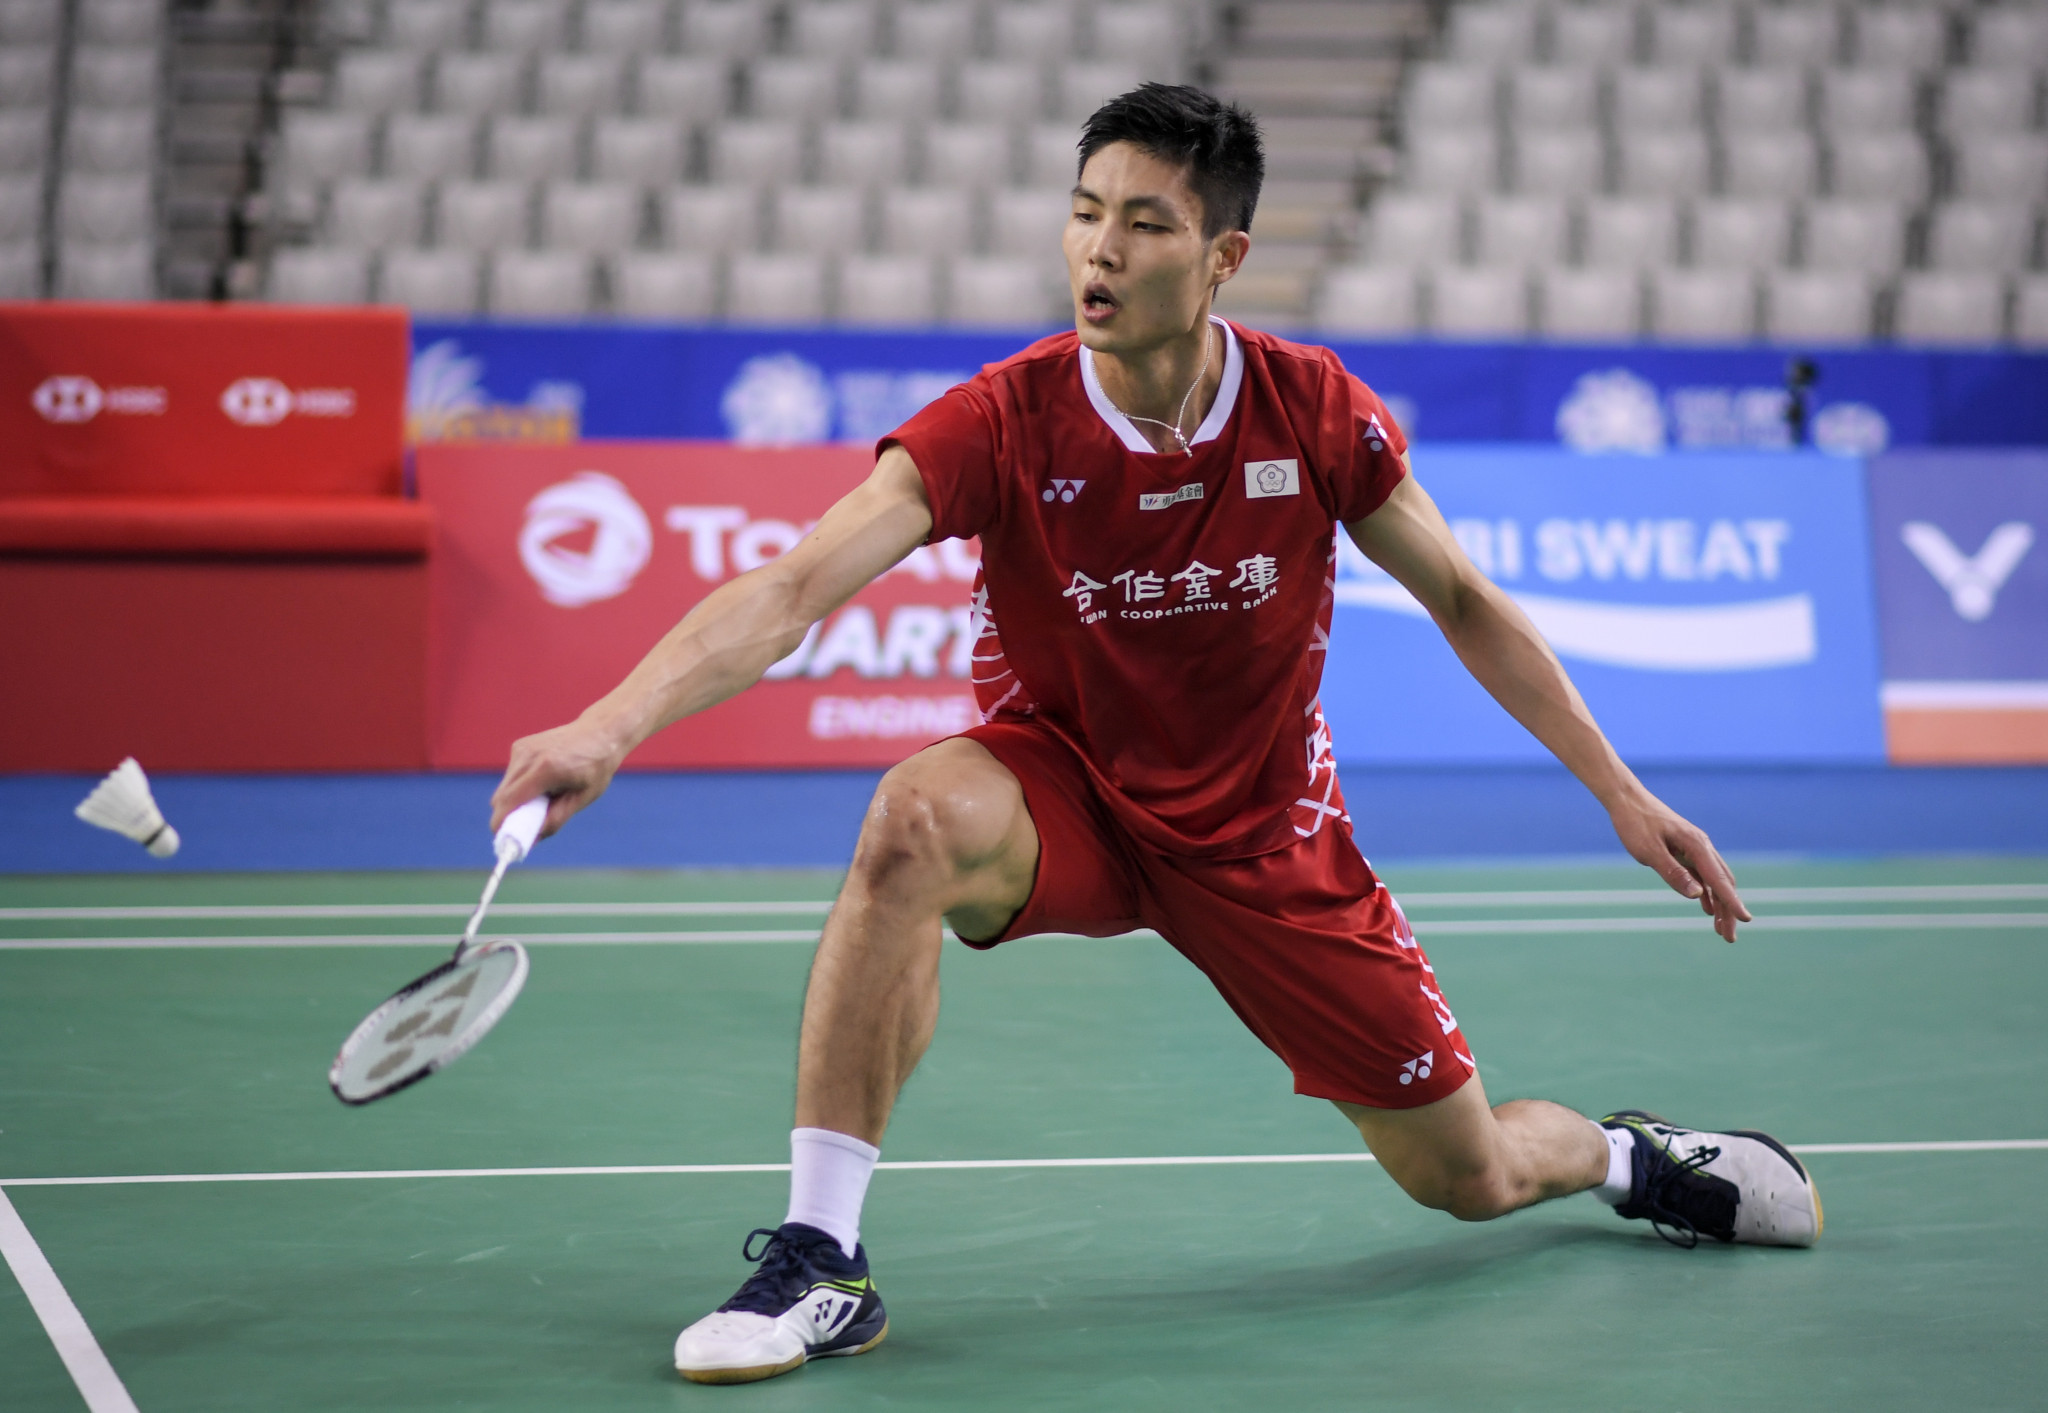 Top men's seed Chou Tien-chen progressed into the next round ©Getty Images